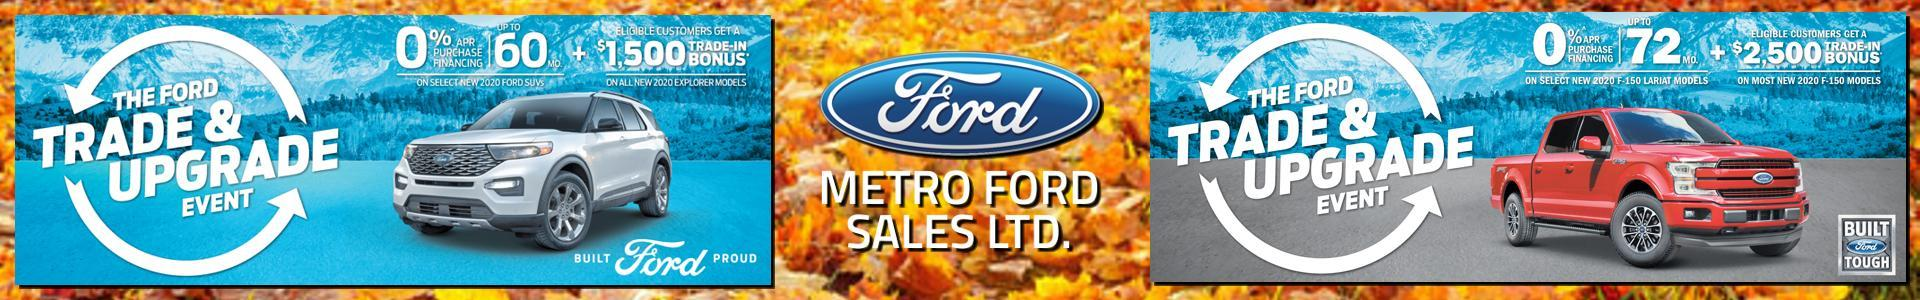 The Trade in and Upgrade event is on now at Metro Ford, Calgary Alberta